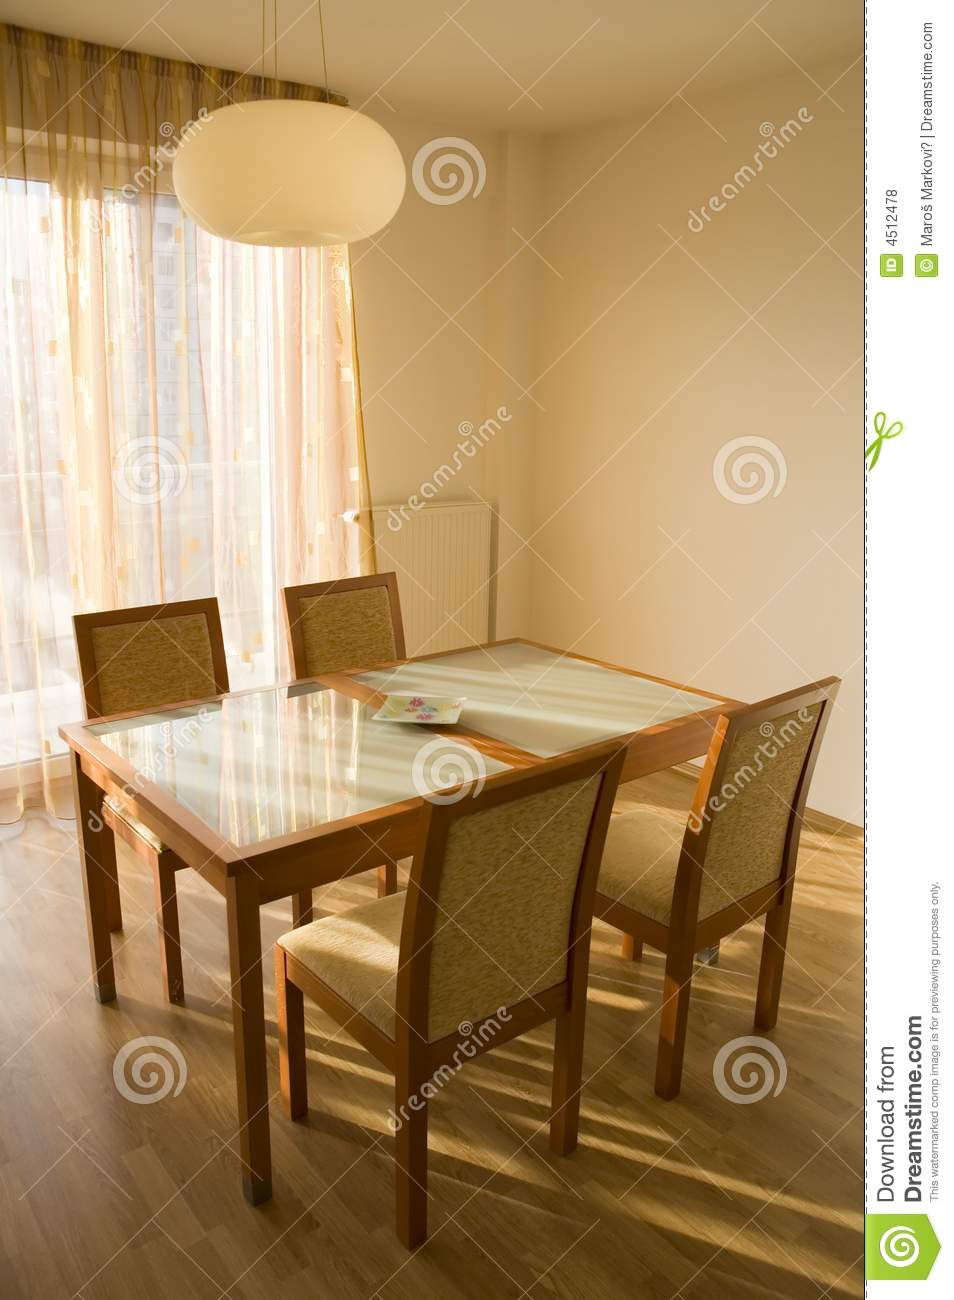 Elegant simple table and chairs royalty free stock photos image